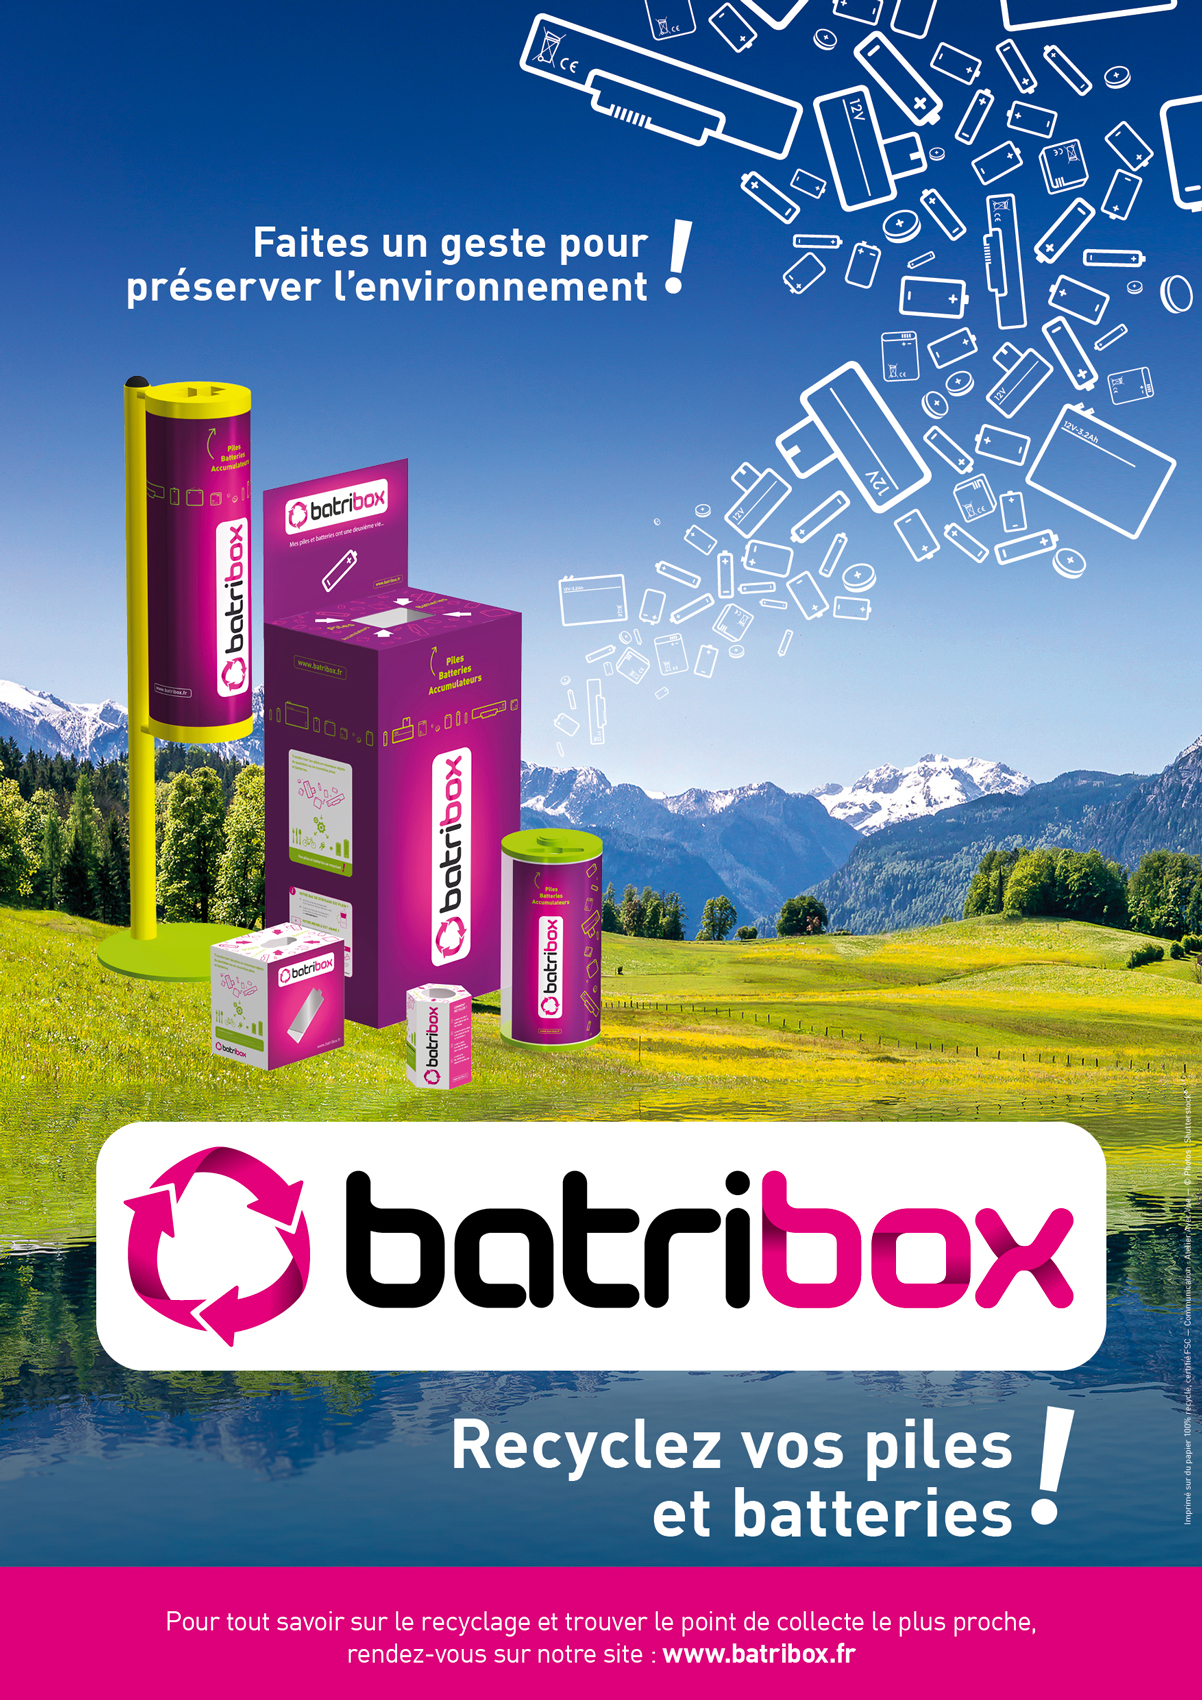 https://www.batribox.fr/wp-content/uploads/2017/10/Batribox_affiche.jpg